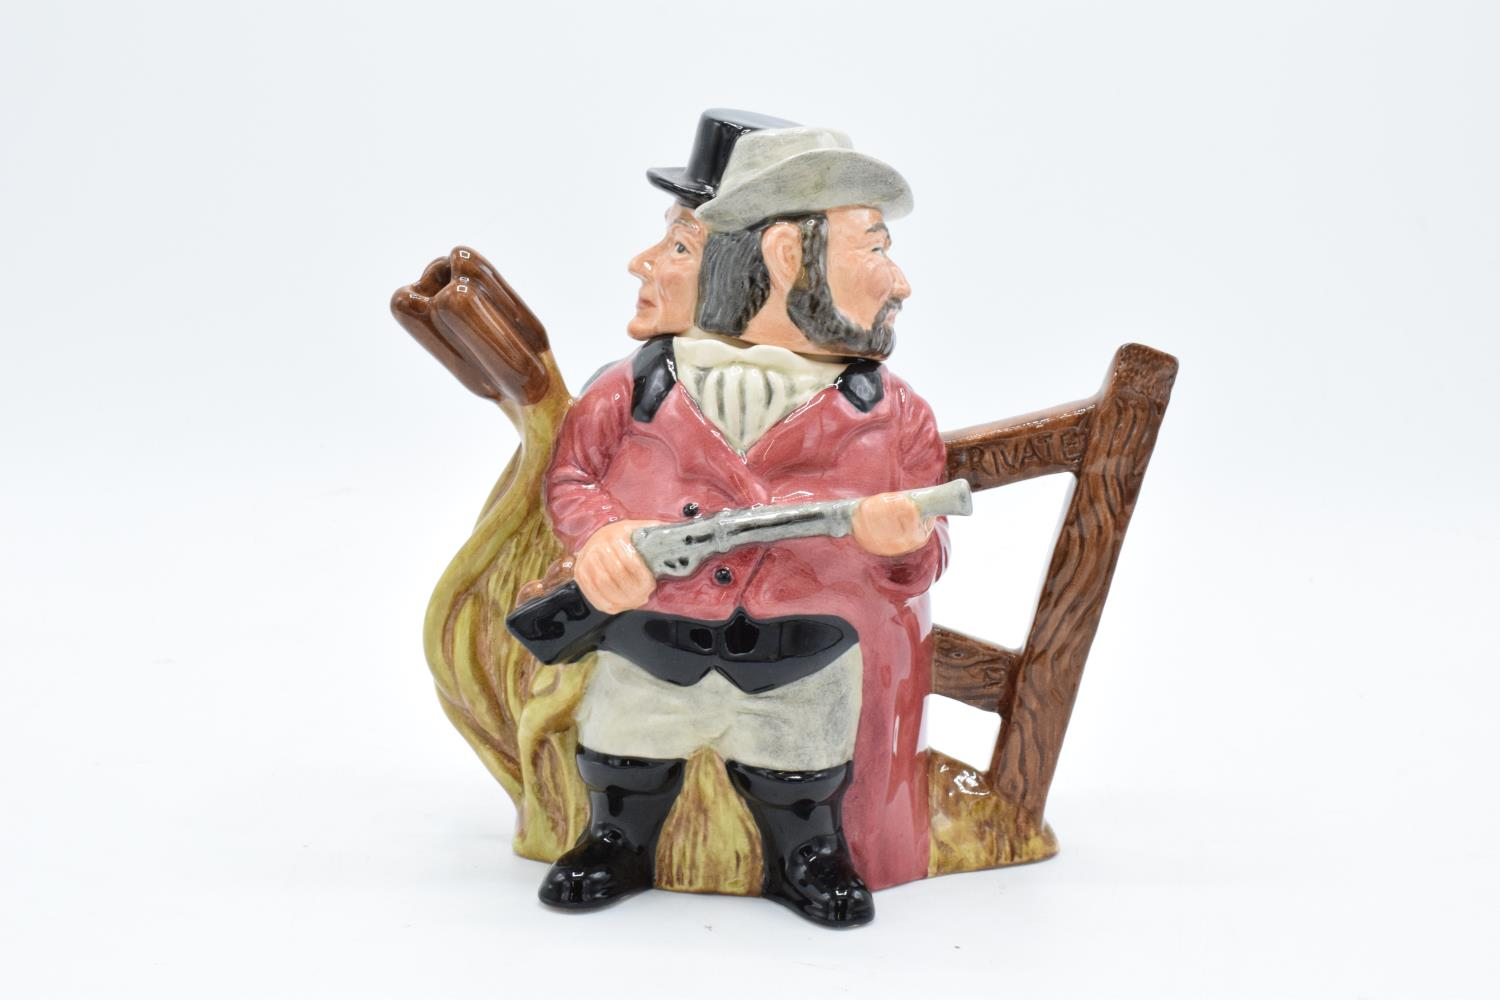 Royal Doulton Double sided character jug tea pot Gamekeeper and Poacher D7175, number 467 of 1500.